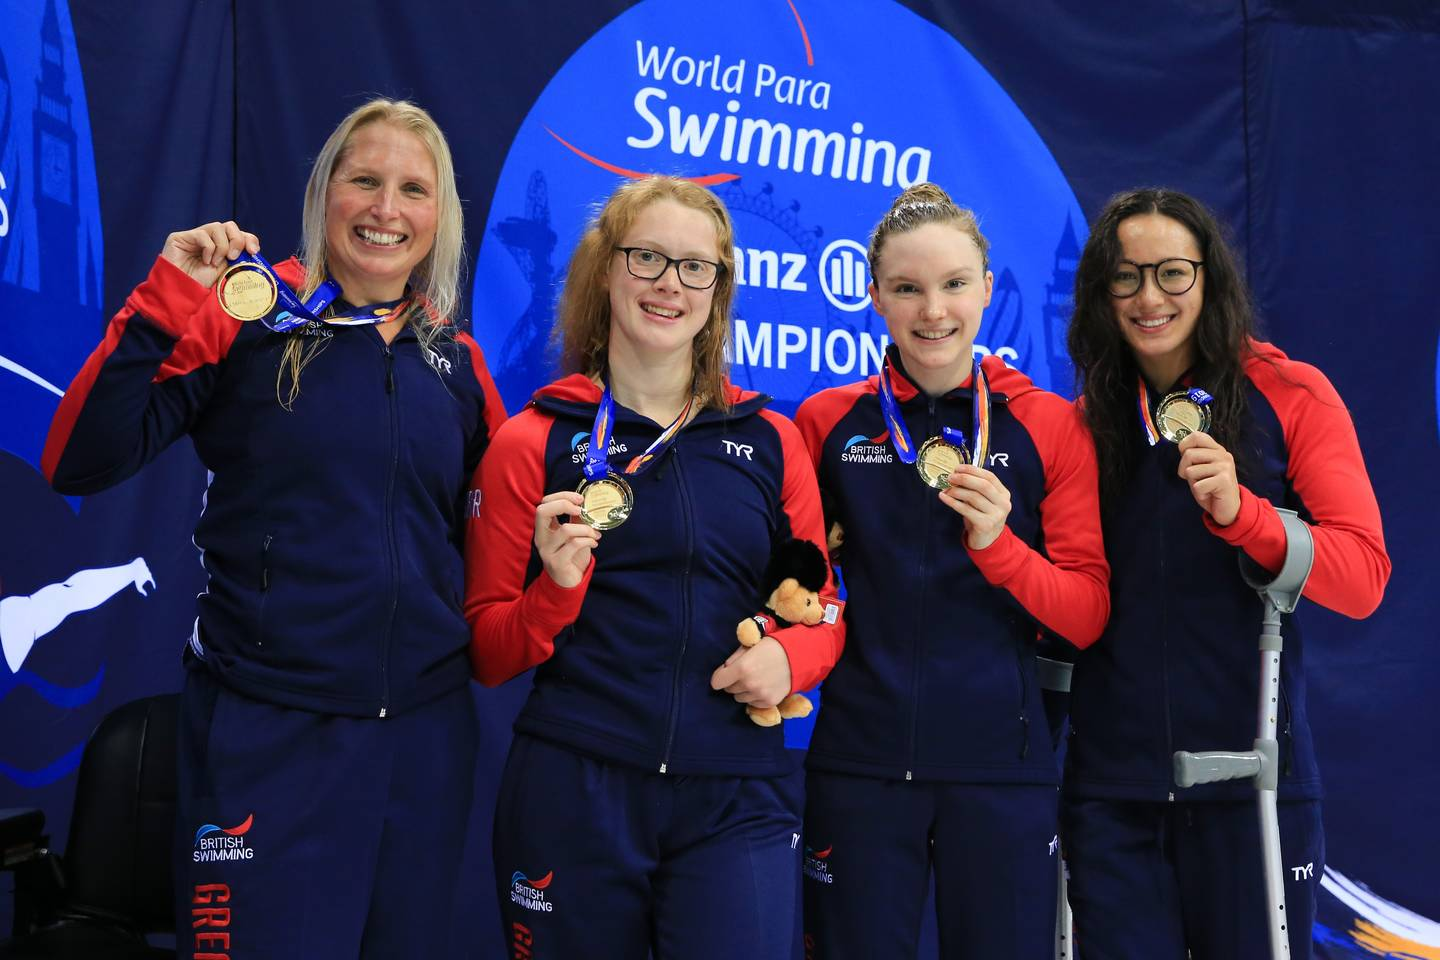 Women's 34pt 4x100m Freestyle Relay team with gold medals in hand.